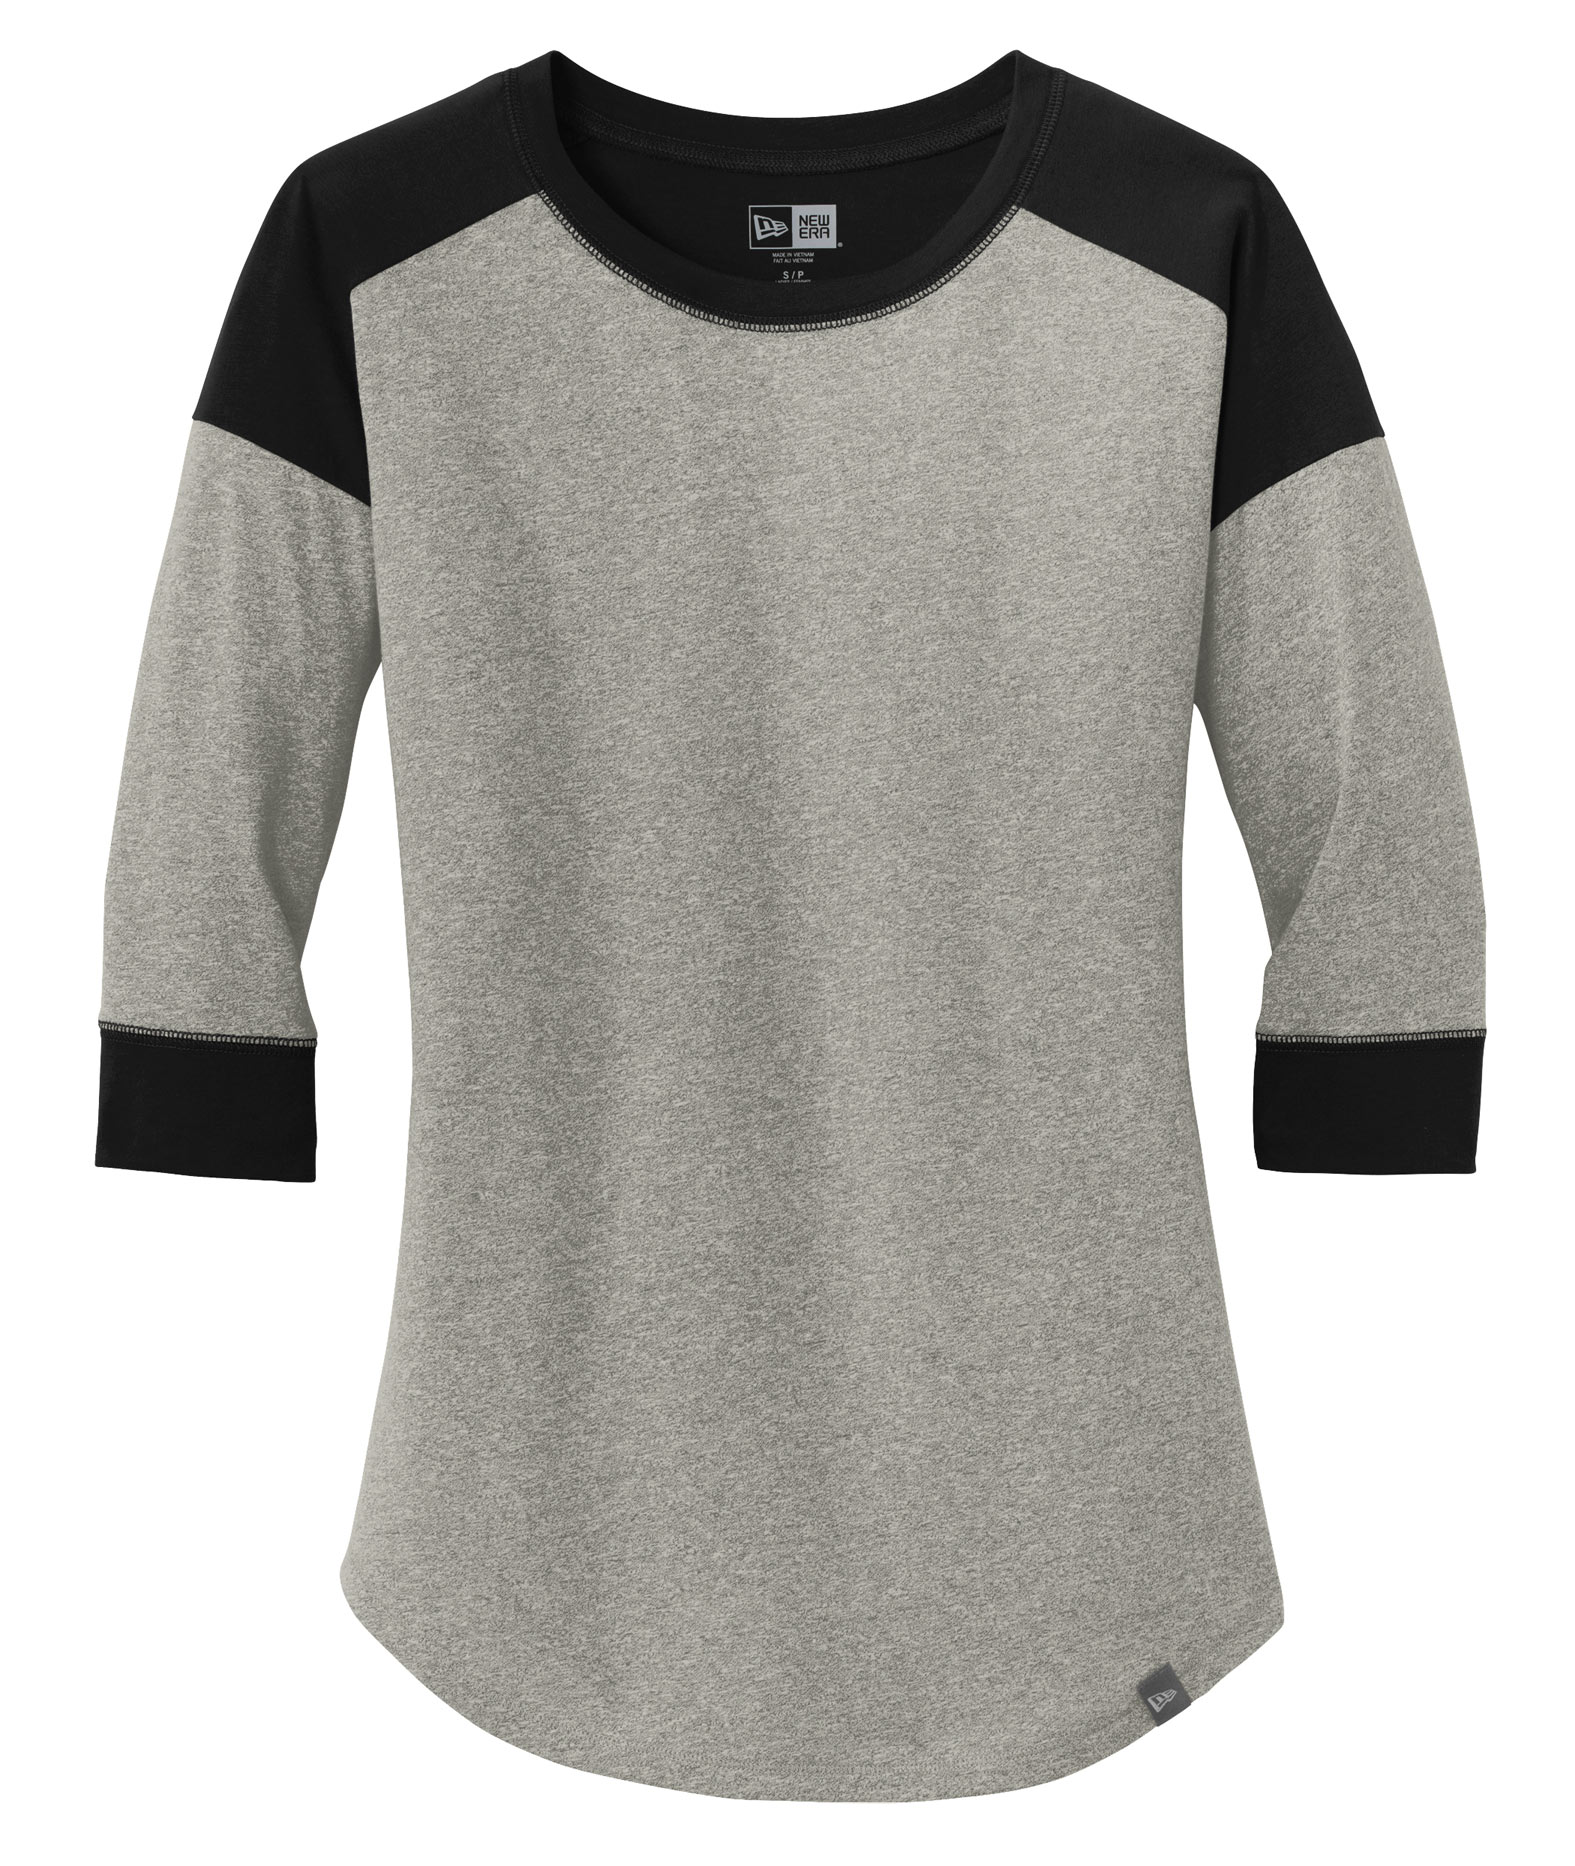 Custom New Era® Ladies Heritage Blend 3 4 Sleeve Baseball Raglan Tee c0c9a80b6